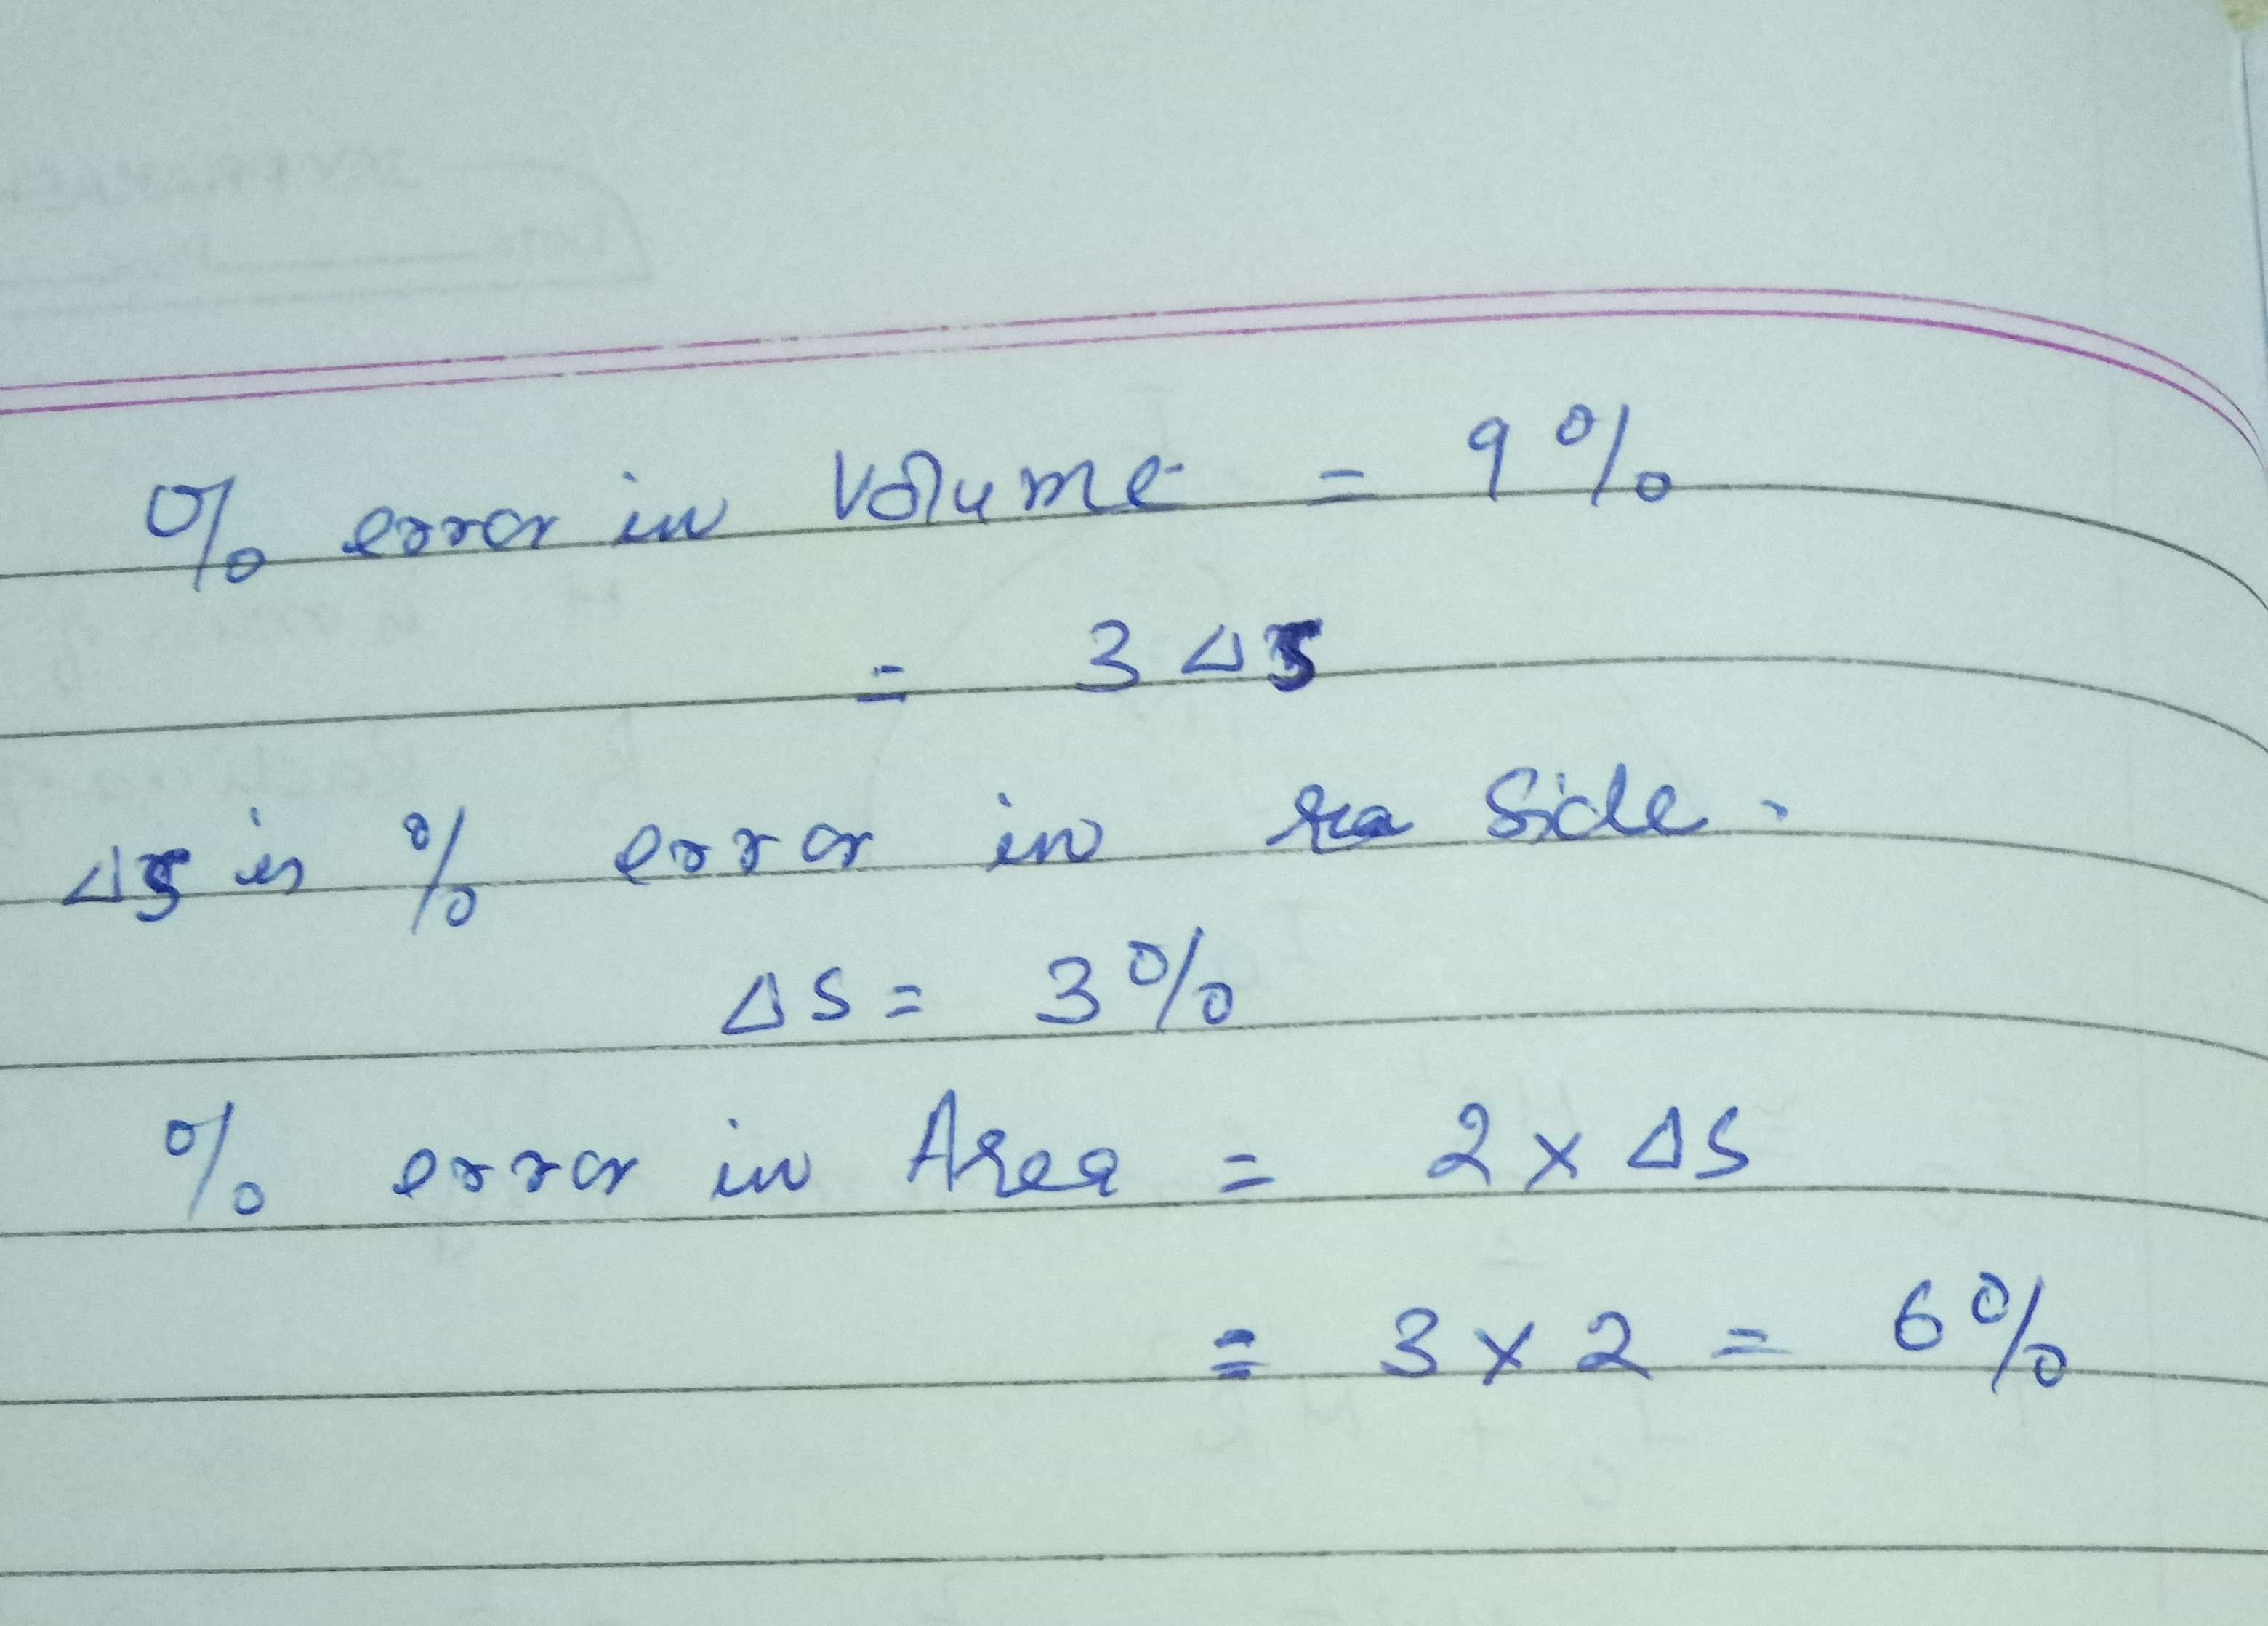 The Volume Measurement Of A Cube Is 9 Off The Percent Error Of The